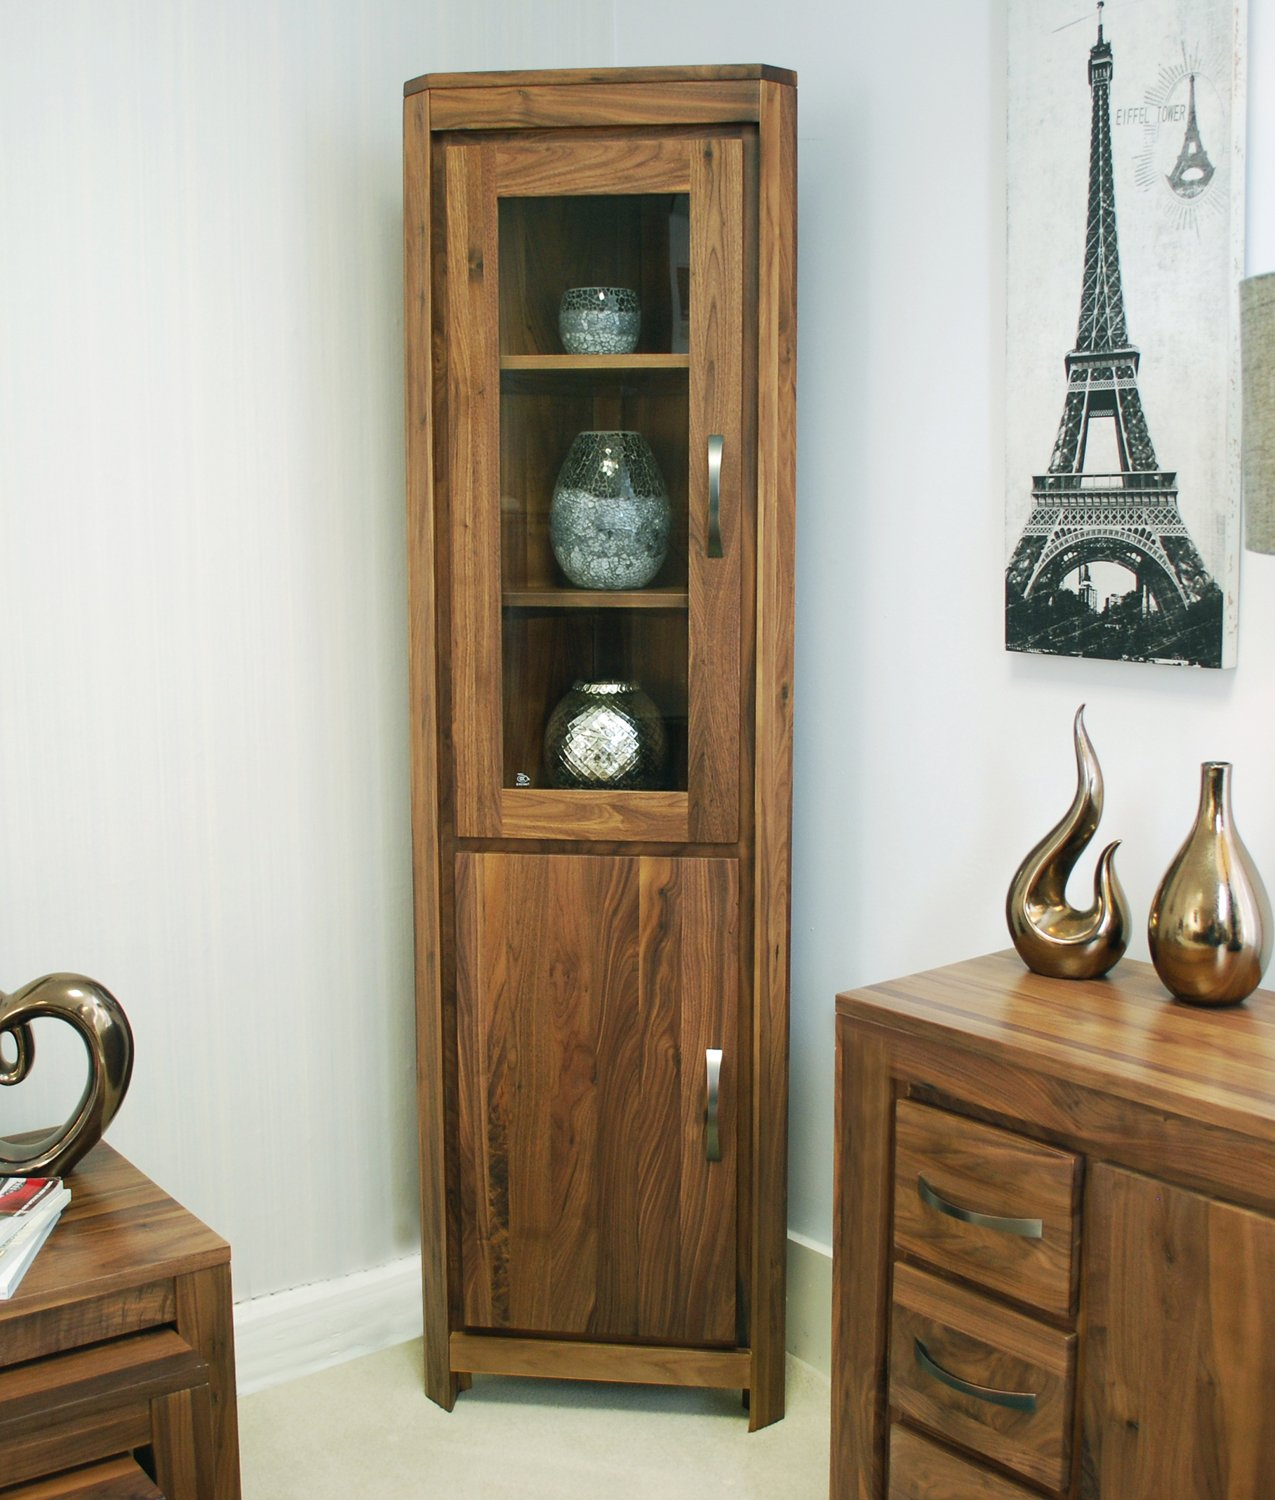 Walnut Living Room Furniture Linea Solid Walnut Home Furniture Glazed Corner Display Cabinet Unit